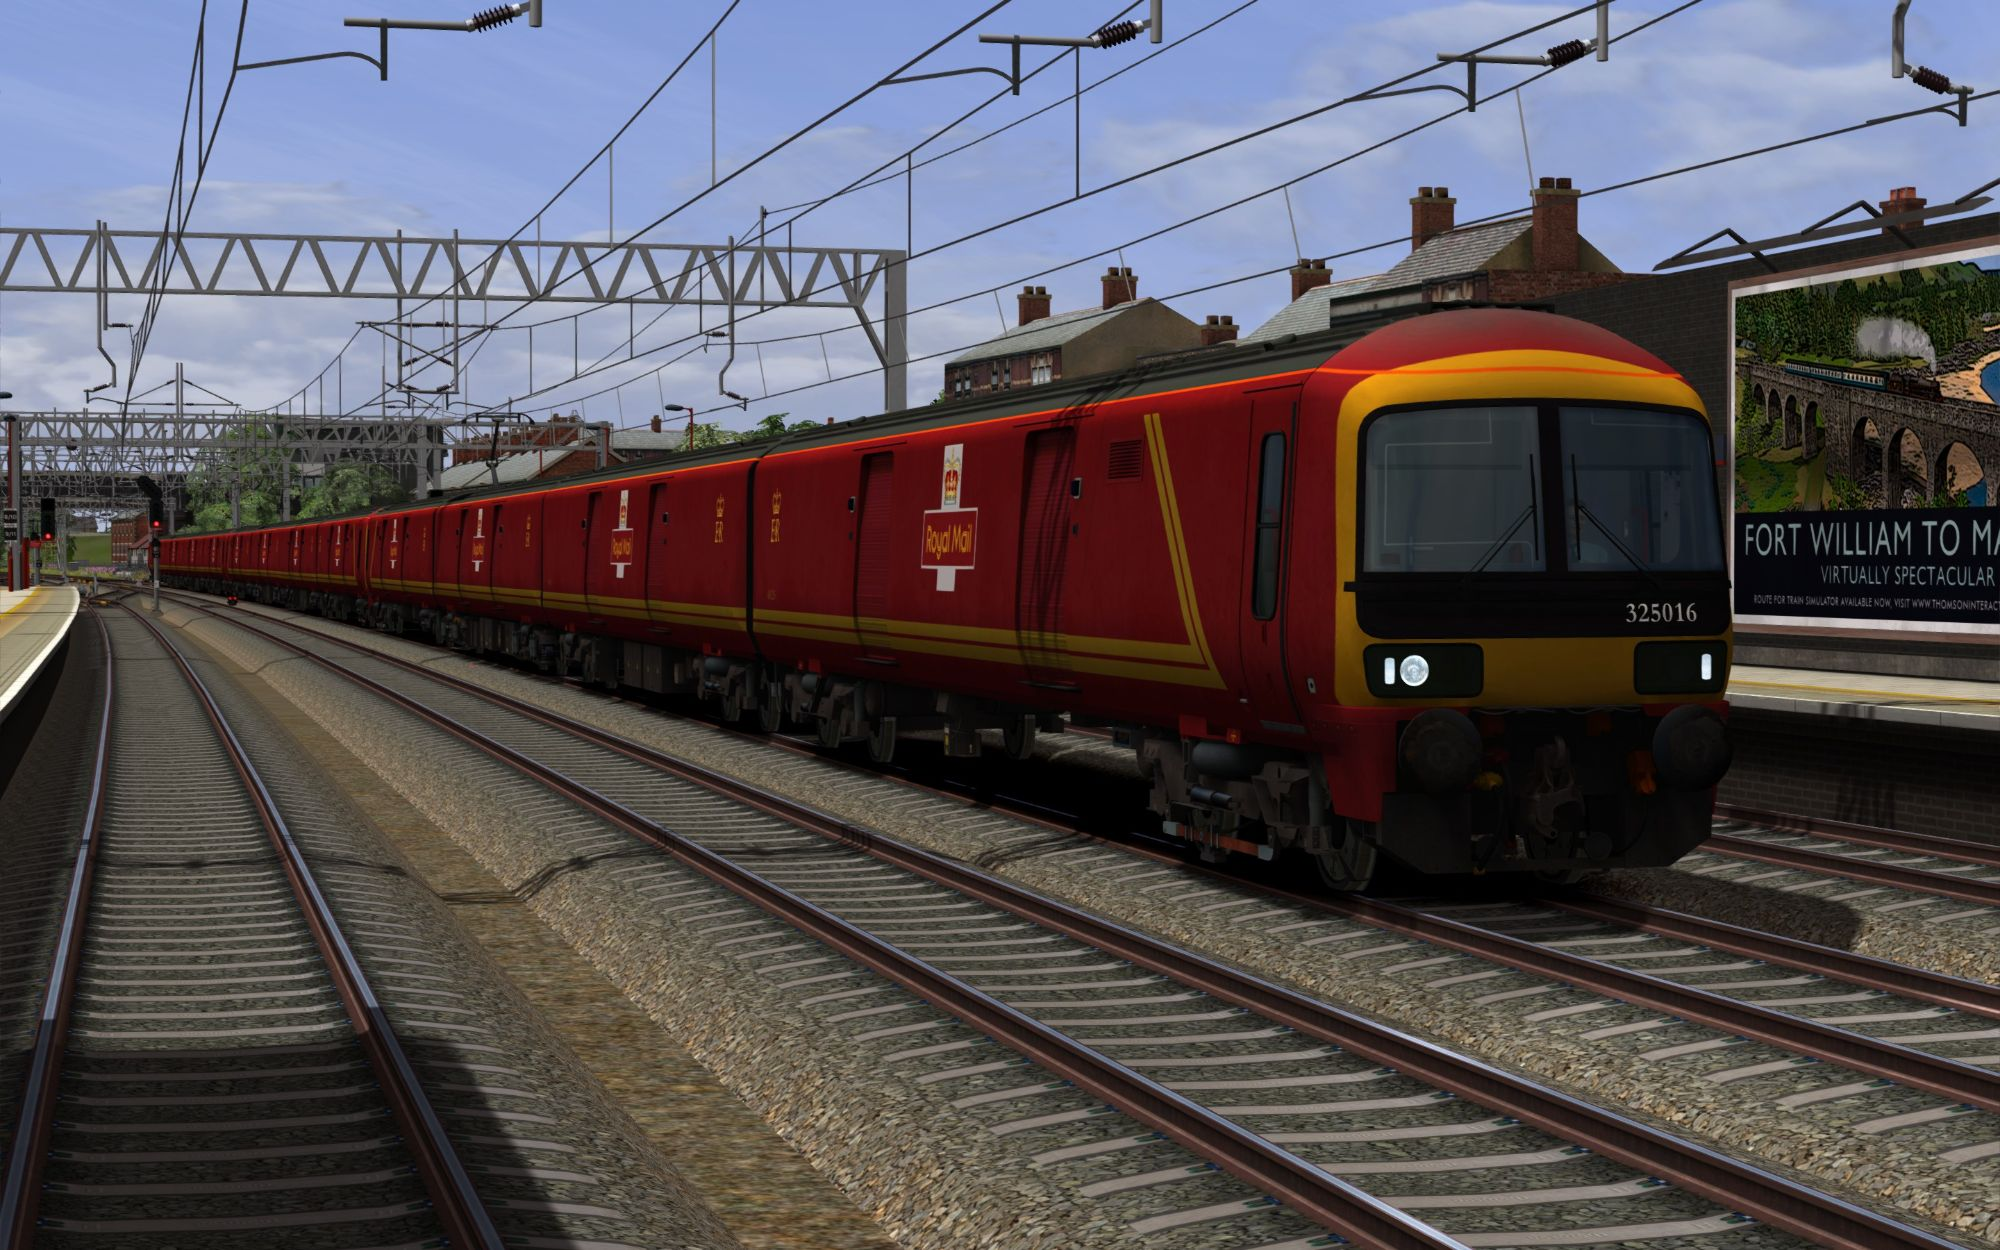 Image showing a screenshot of the Class 325 EMU with the DPSimulation branding pack applied